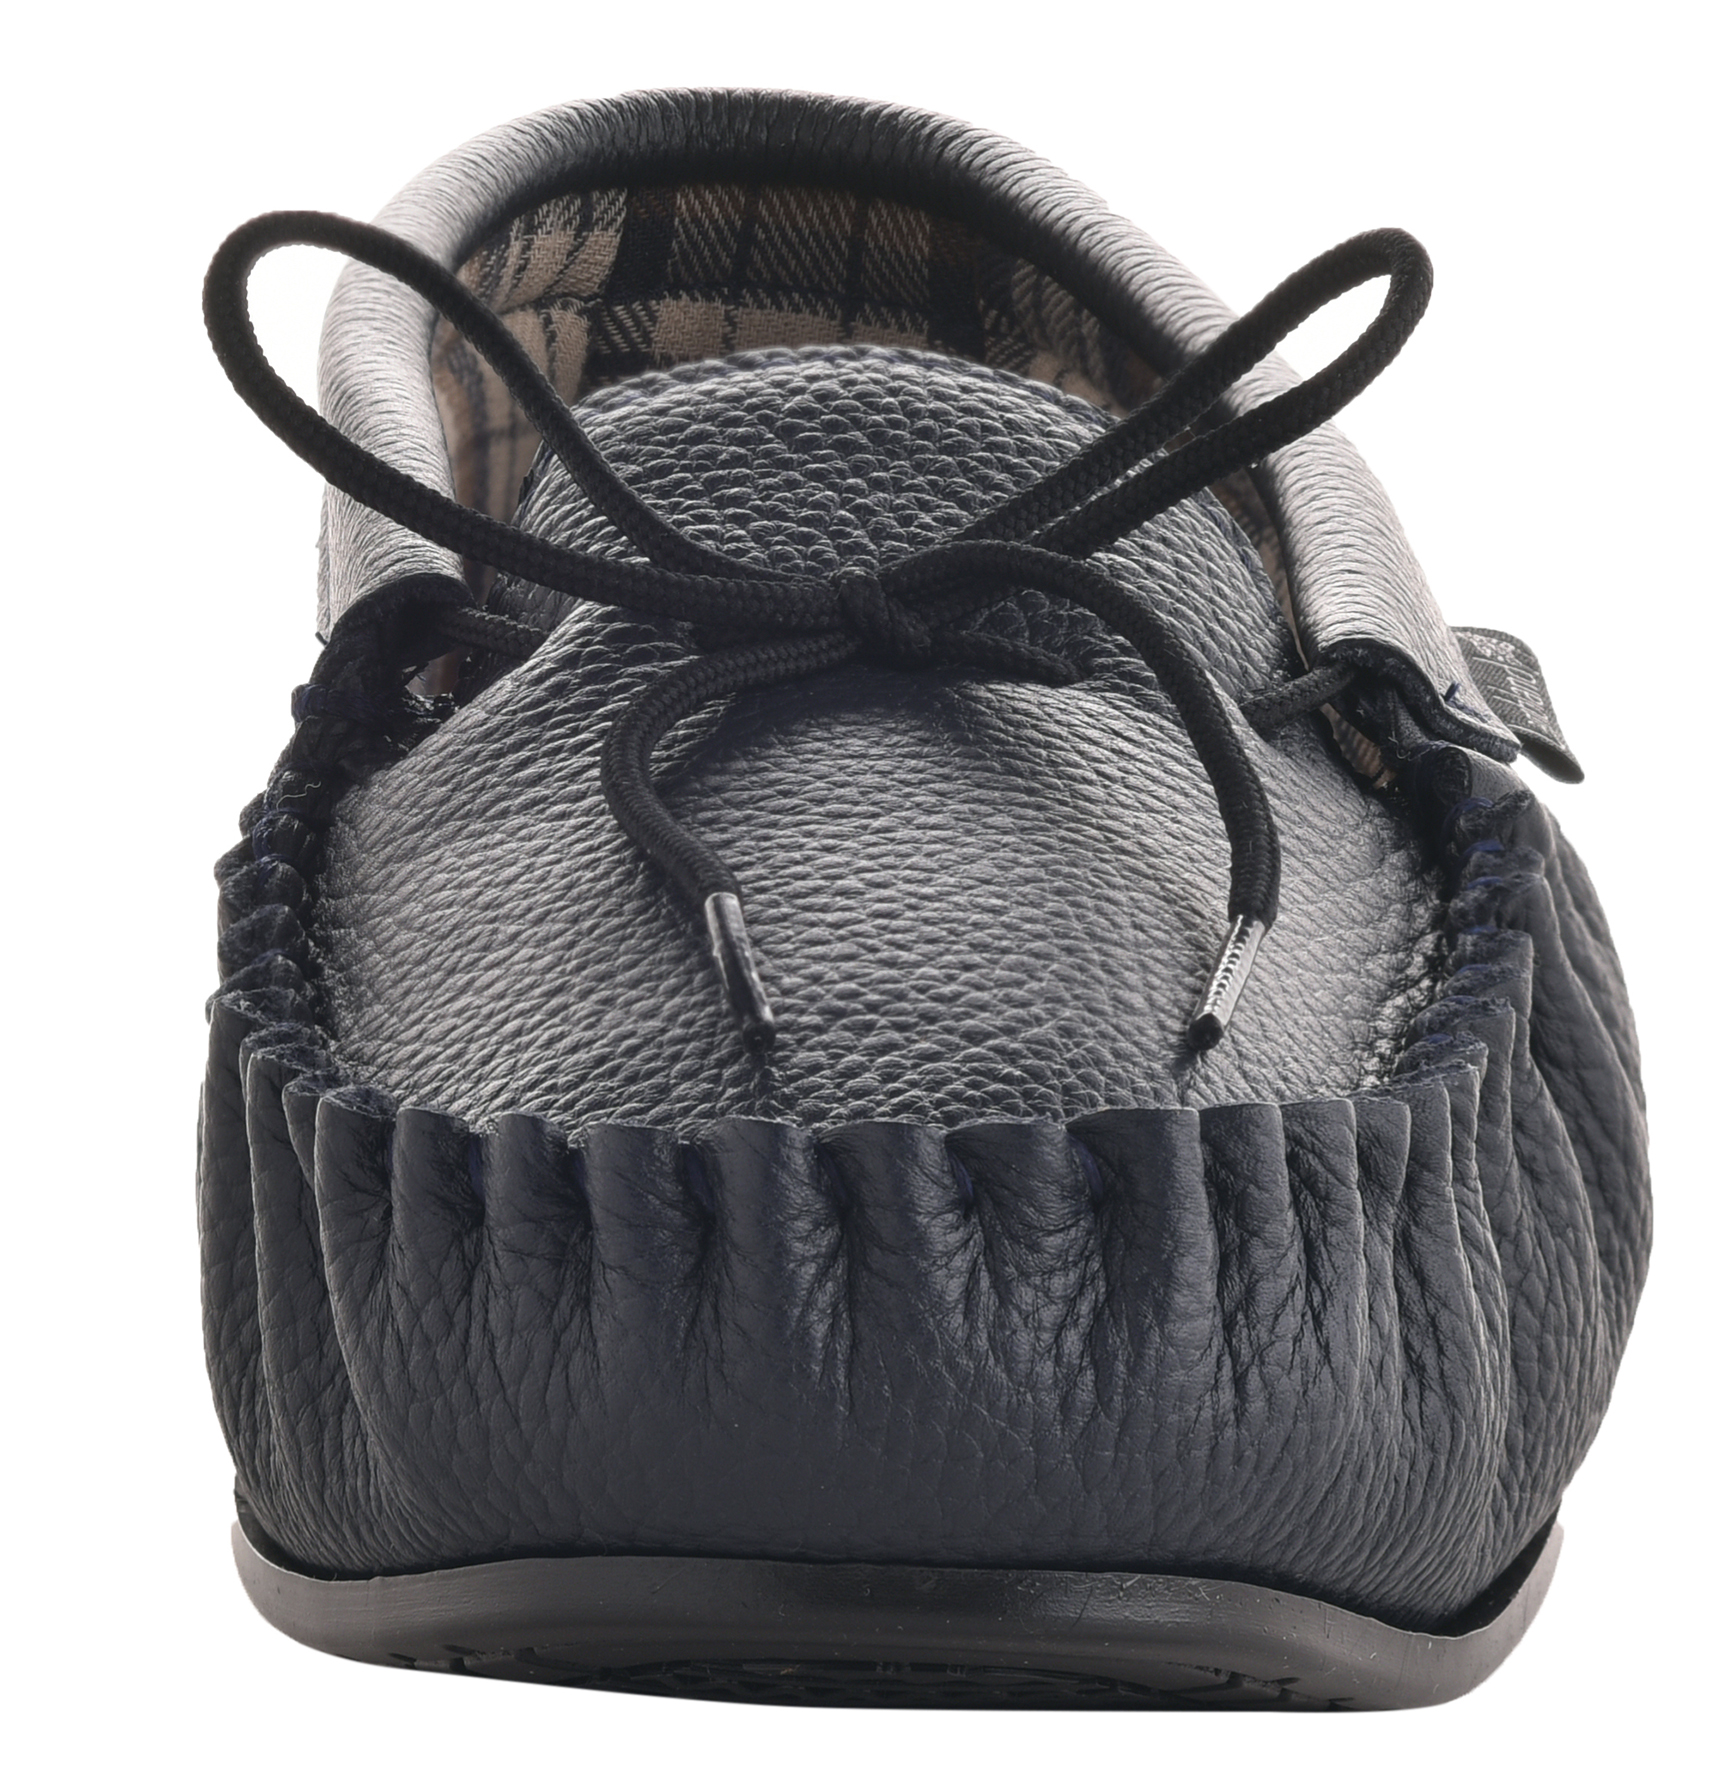 Leather-Moccasin-Slippers-UK-Made-for-Men-and-Ladies-Cotton-Lining-by-Lambland thumbnail 19